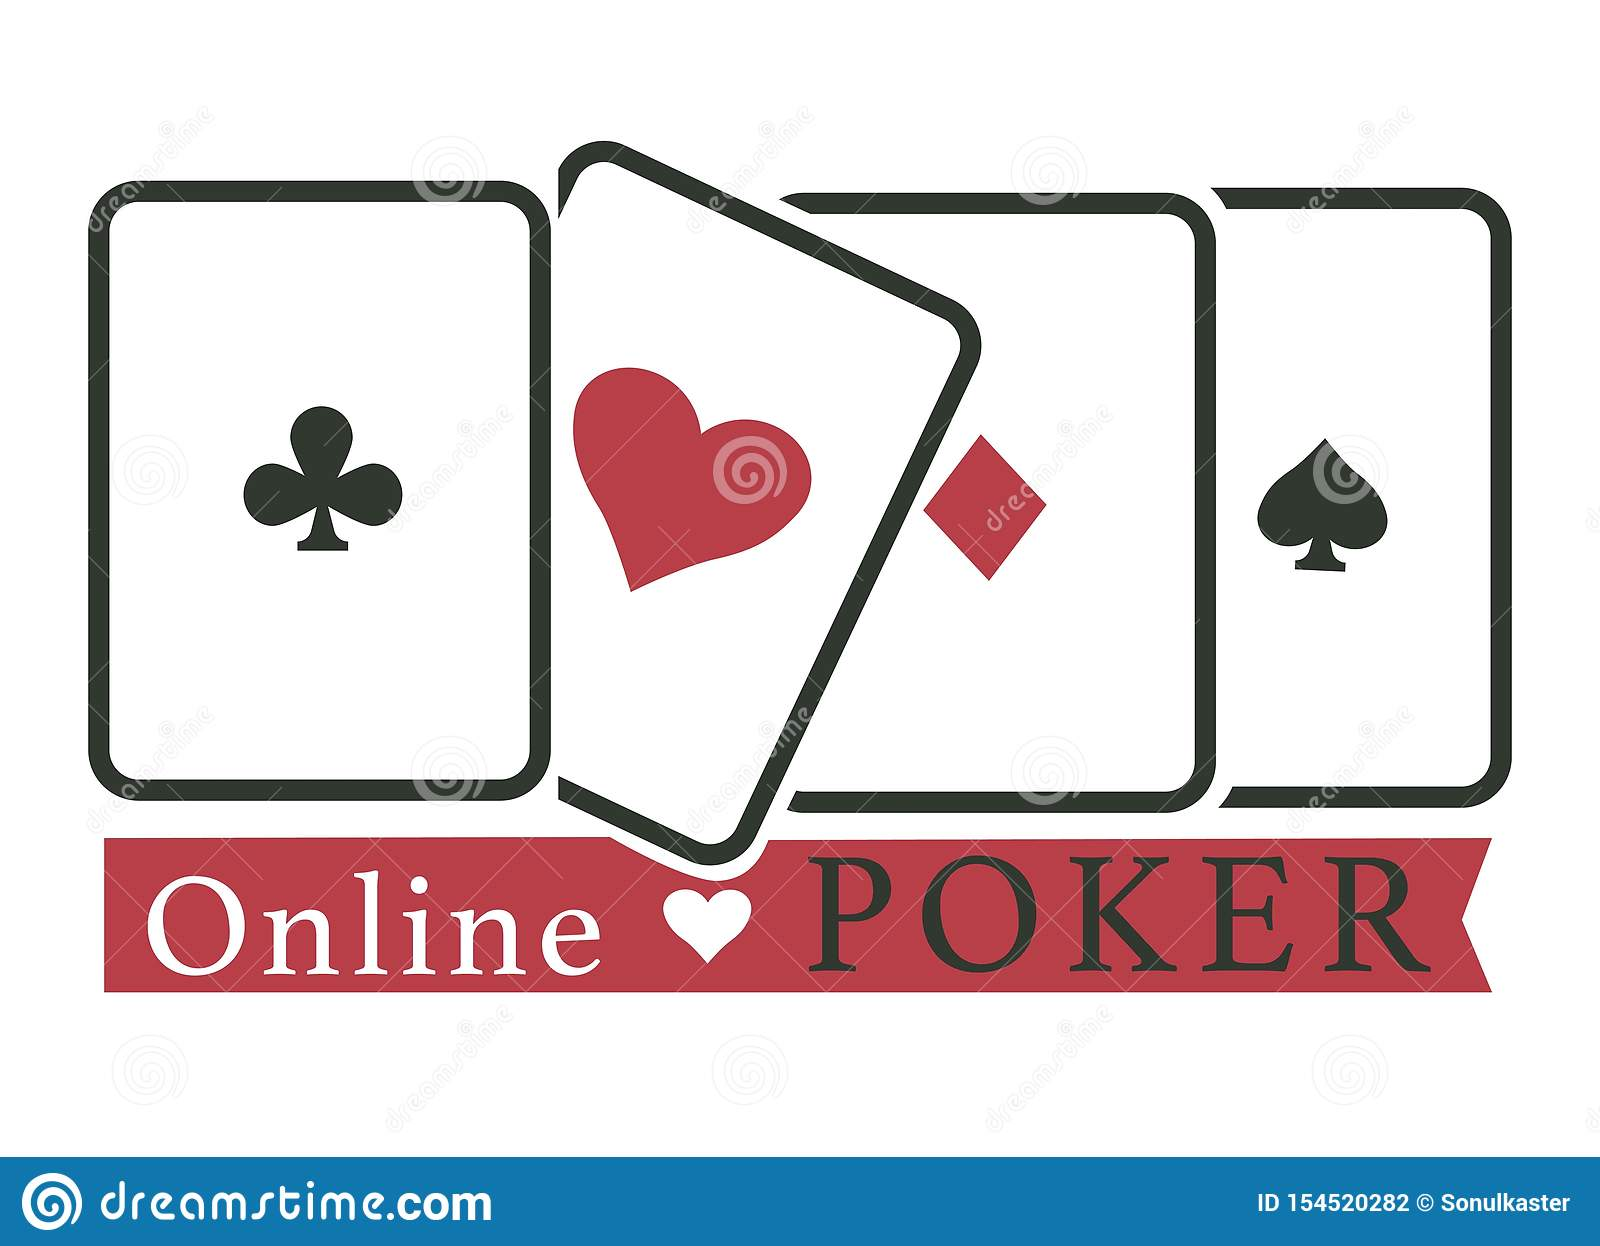 Online Poker Club Casino Gambling Play Cards Stock Vector Illustration Of Play Equipment 154520282